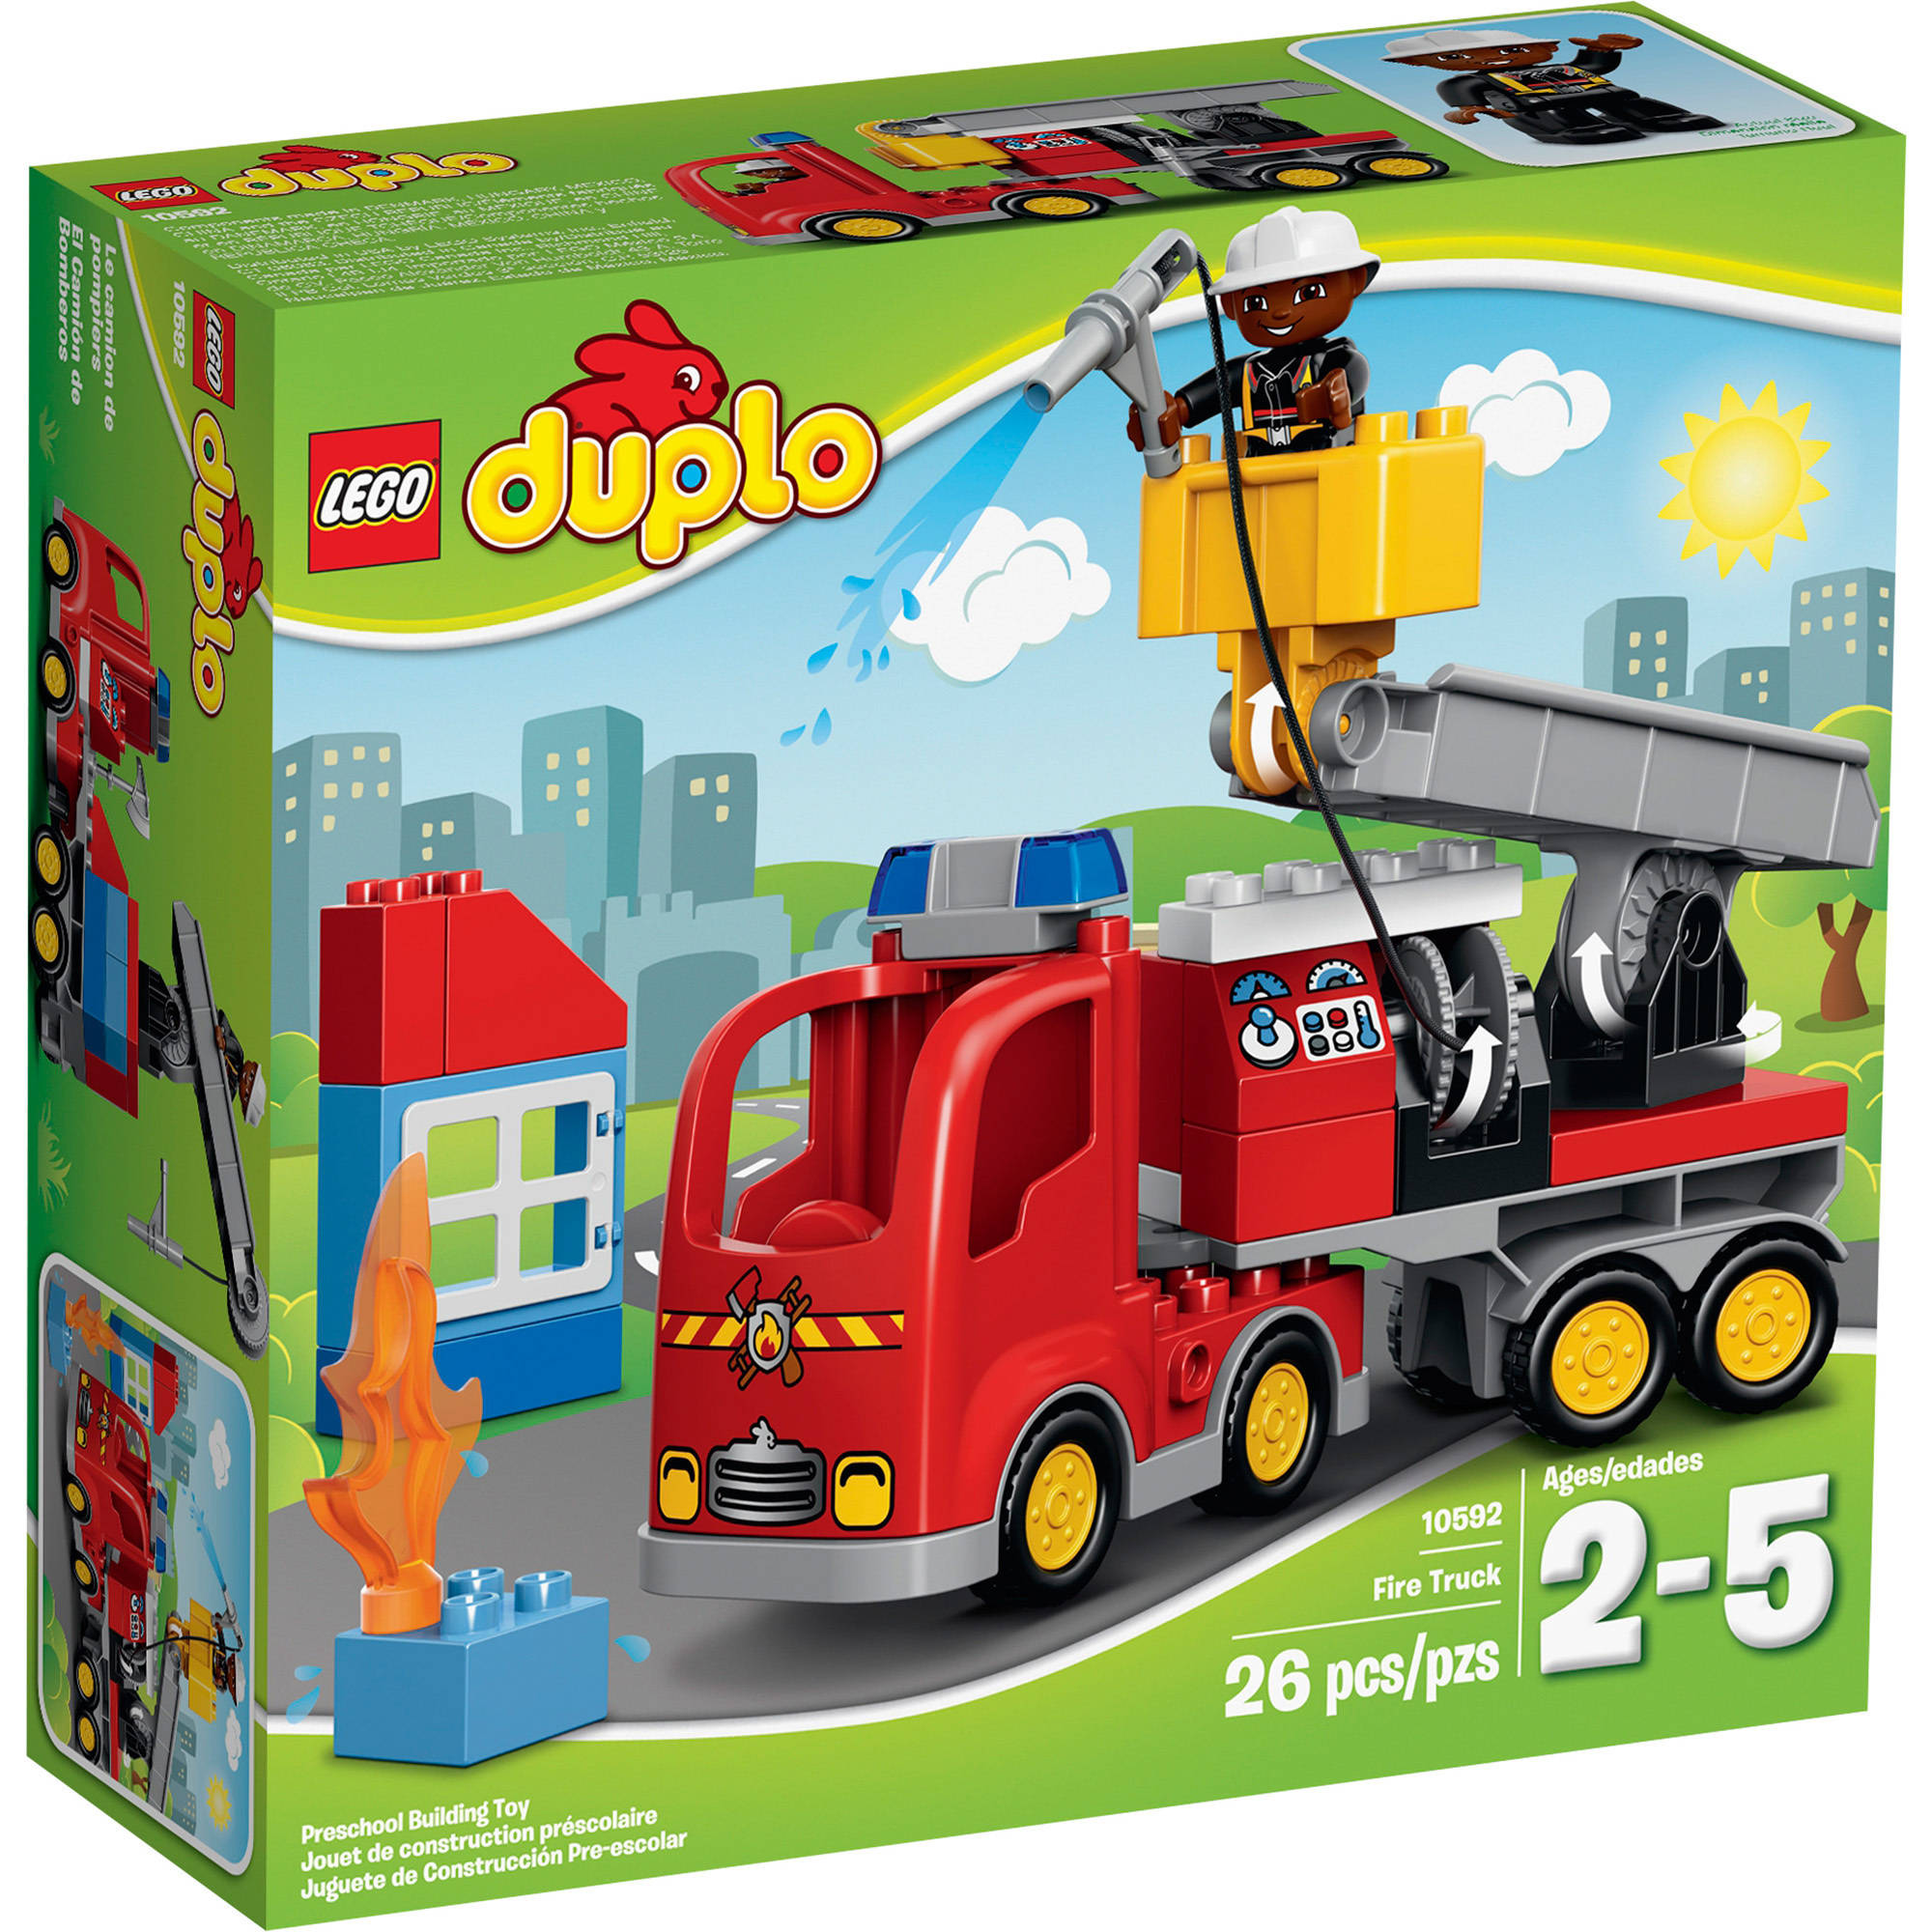 Lego DUPLO Town Fire Truck, 10592 by LEGO Systems, Inc.